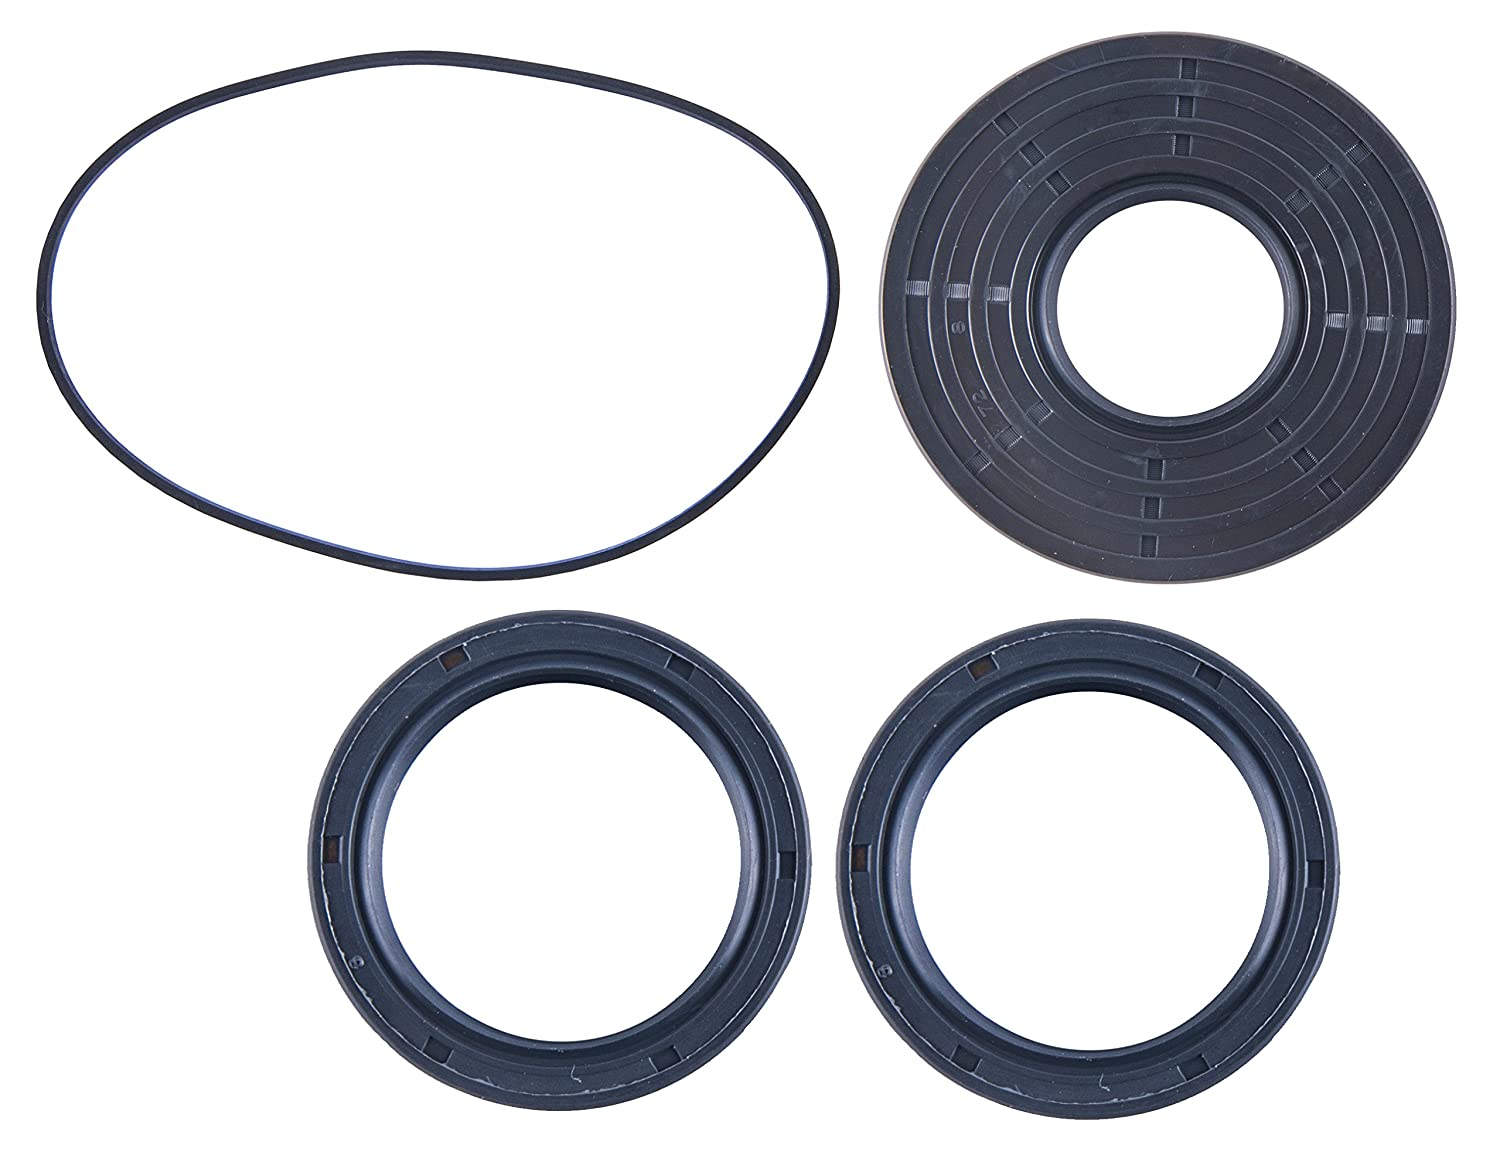 East Lake Axle front differential seal kit compatible with Polaris Ranger XP//RZR S//XP 900//1000 2017 2018 2019